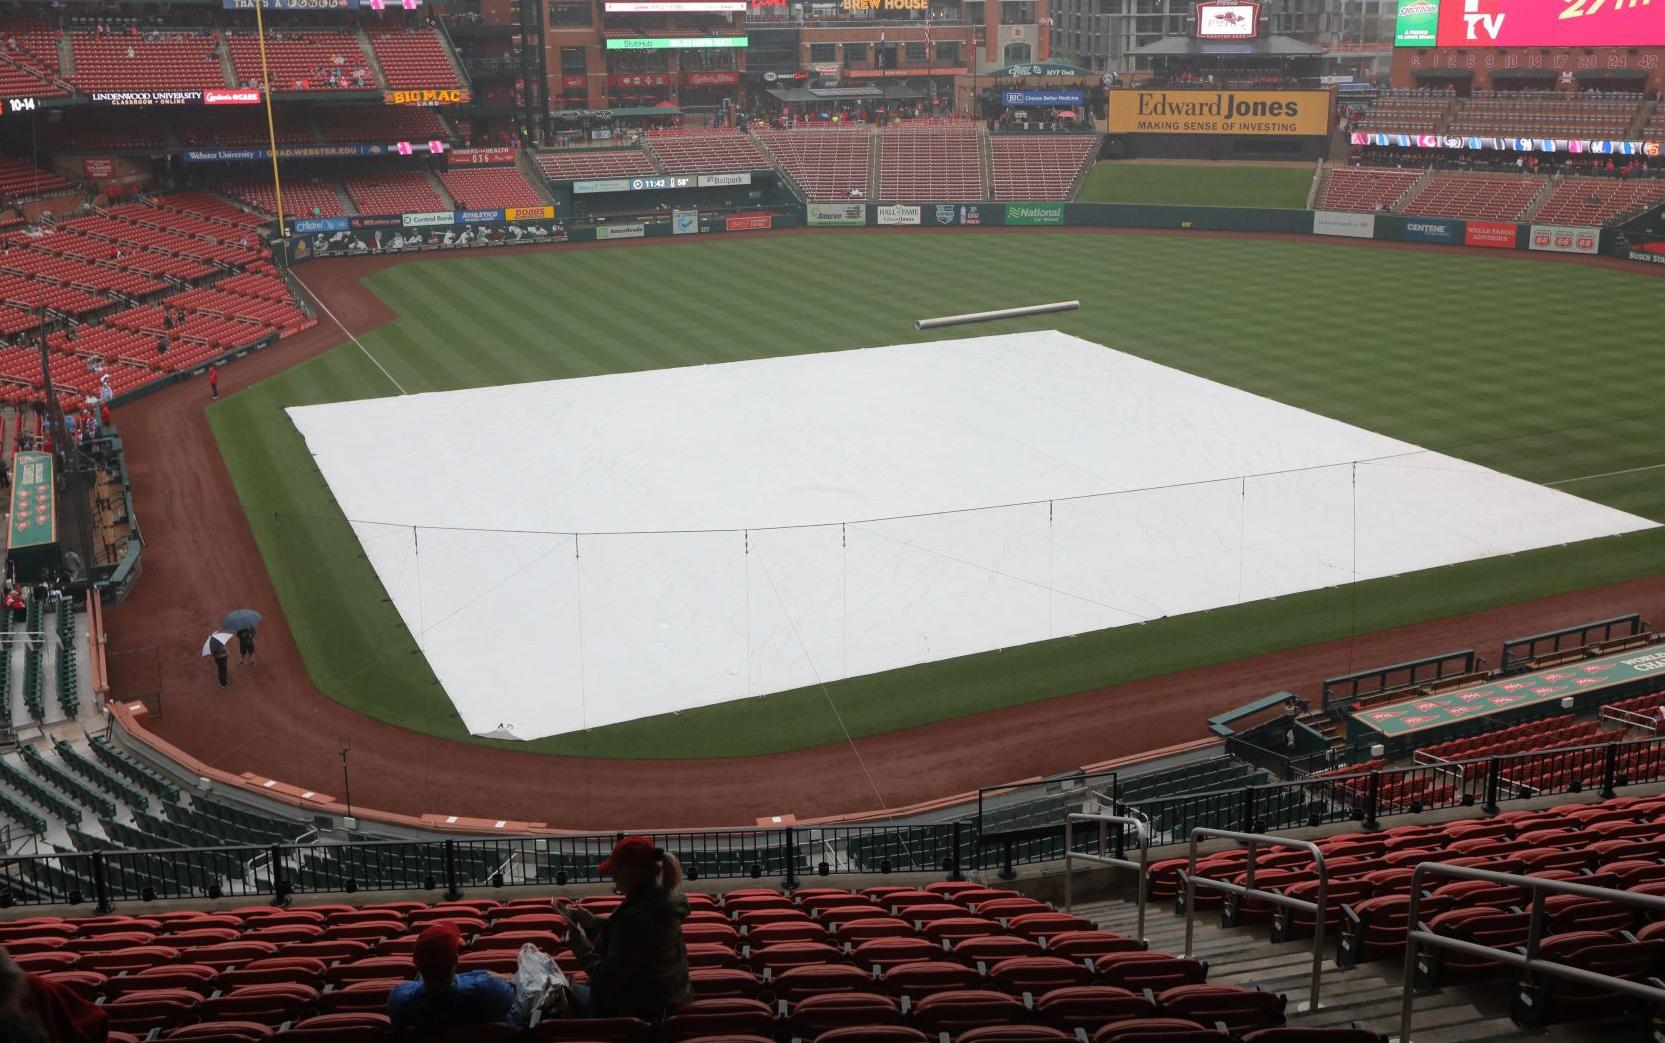 All eyes on Blues as Cards call off game; Wacha and Waino pitch Wednesday